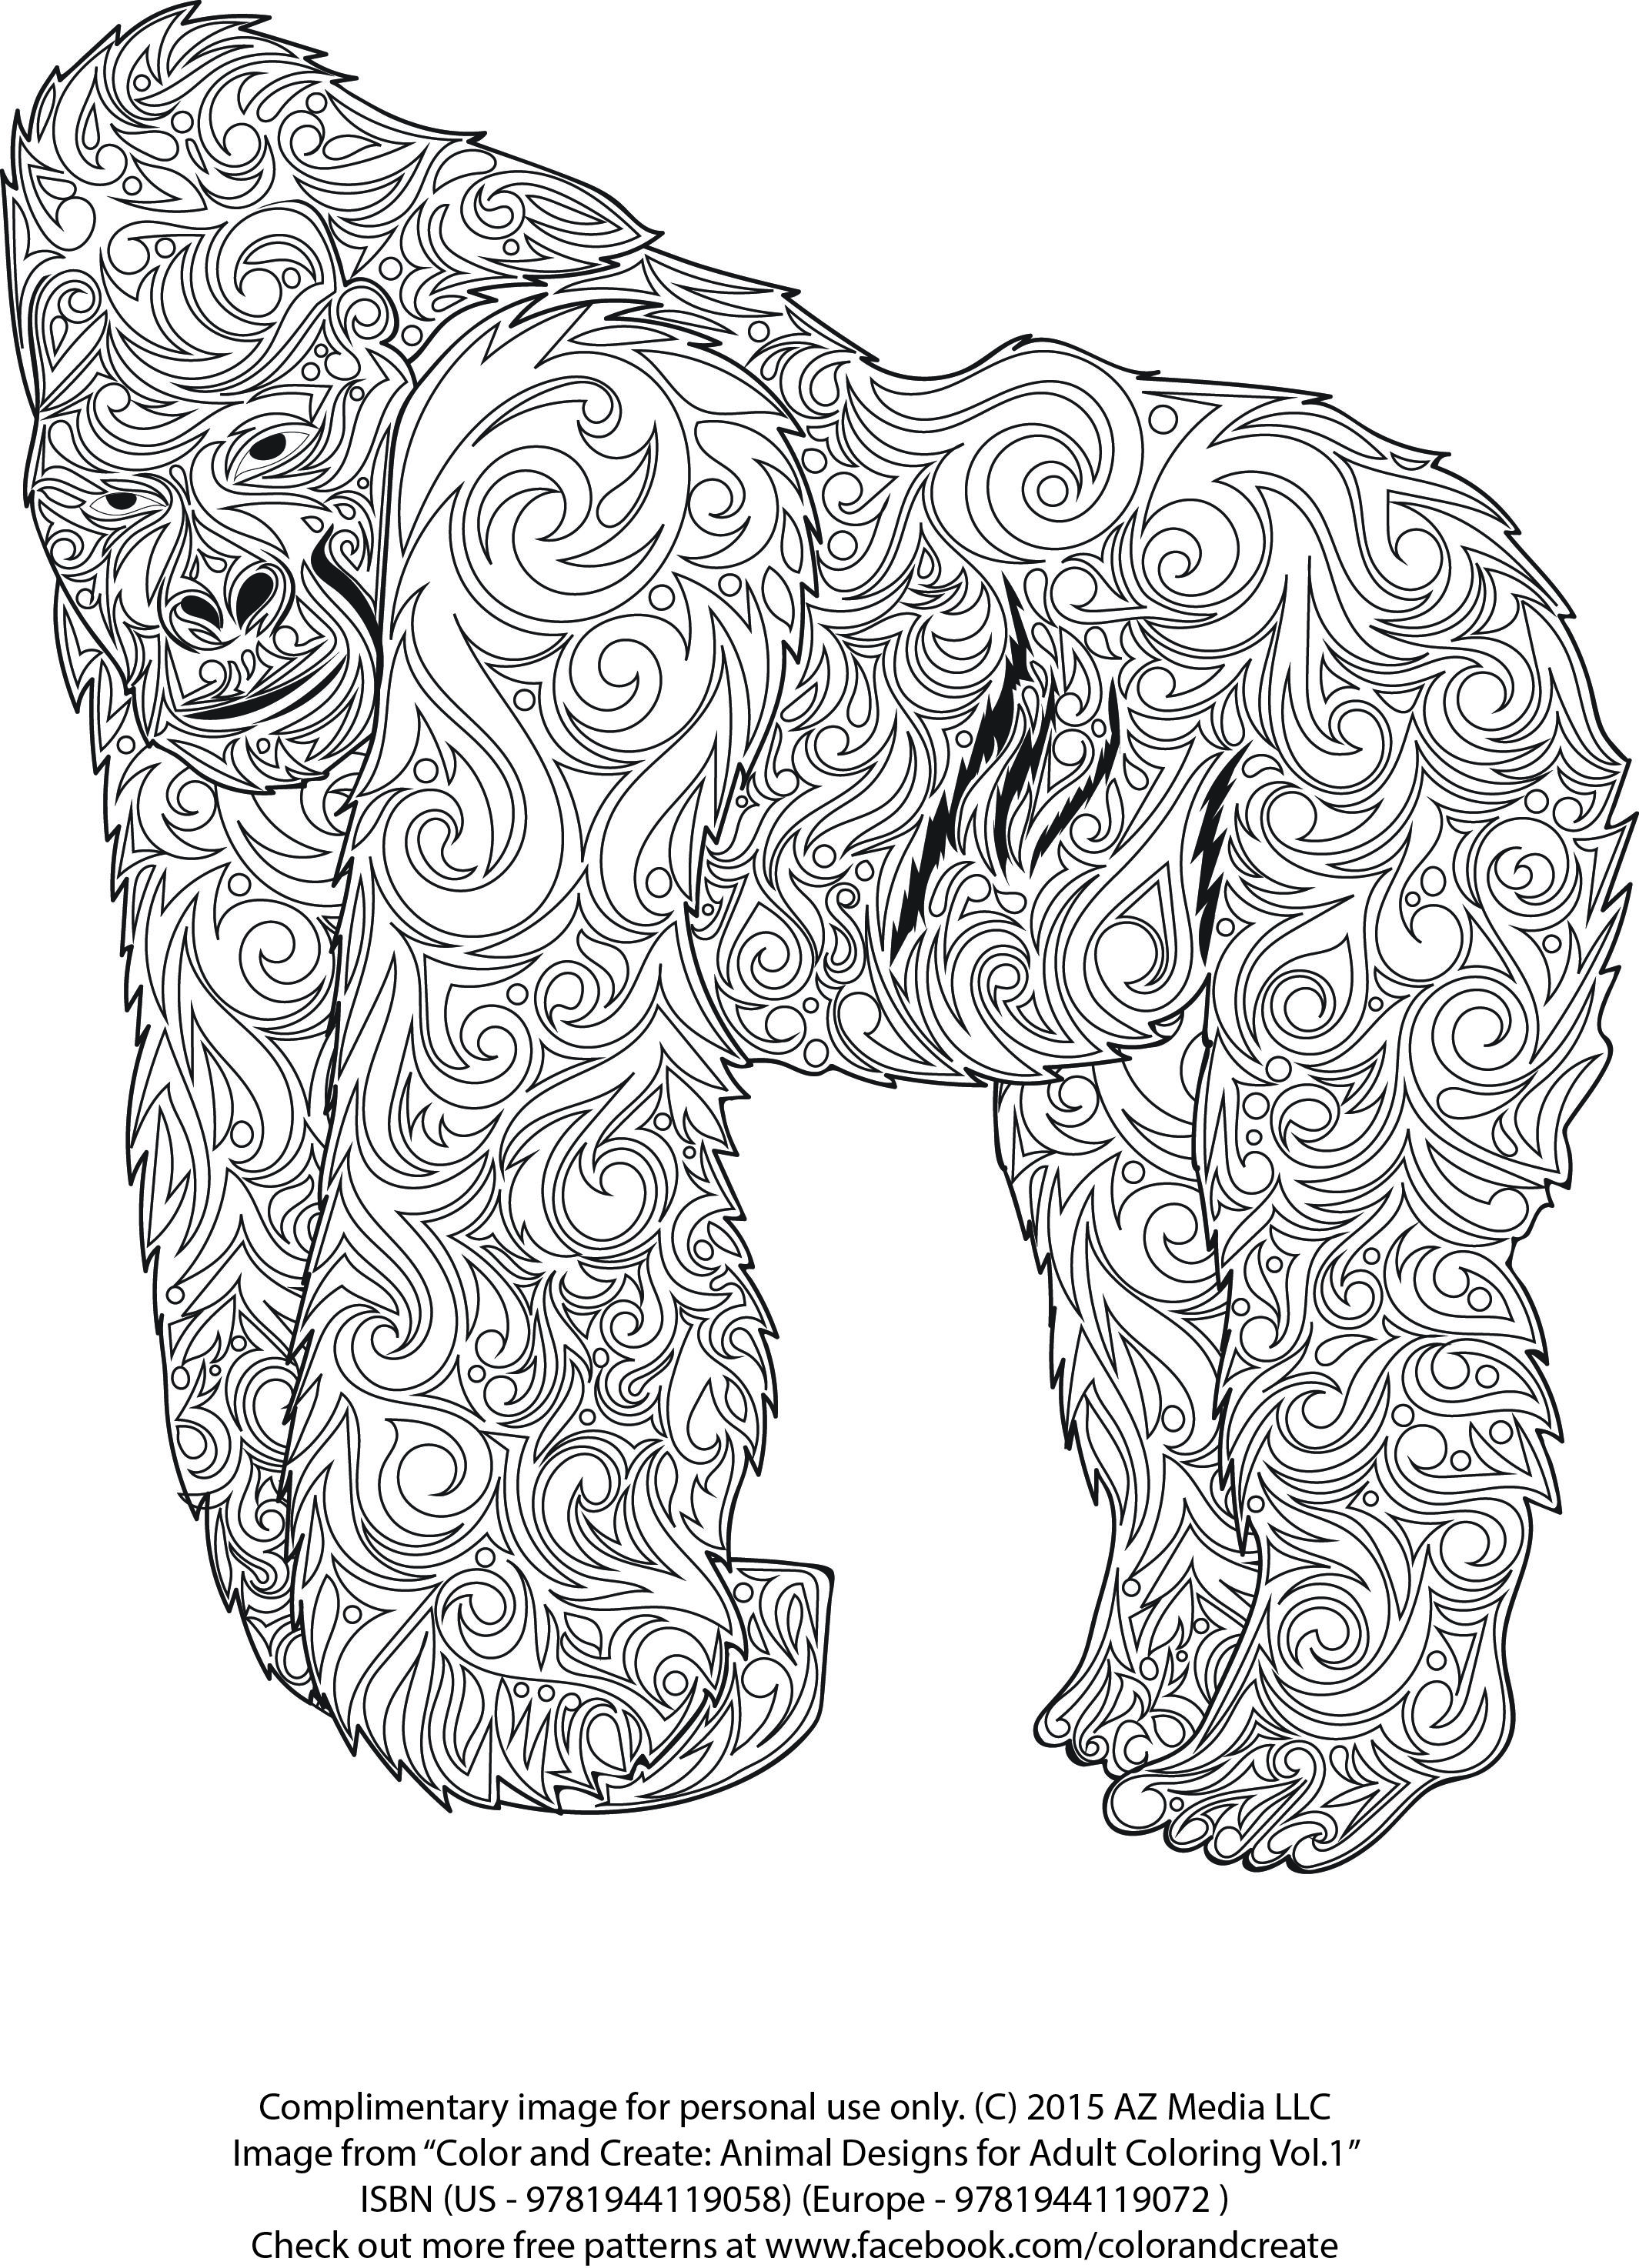 Complimentary Animal Coloring Pattern From Color And Create